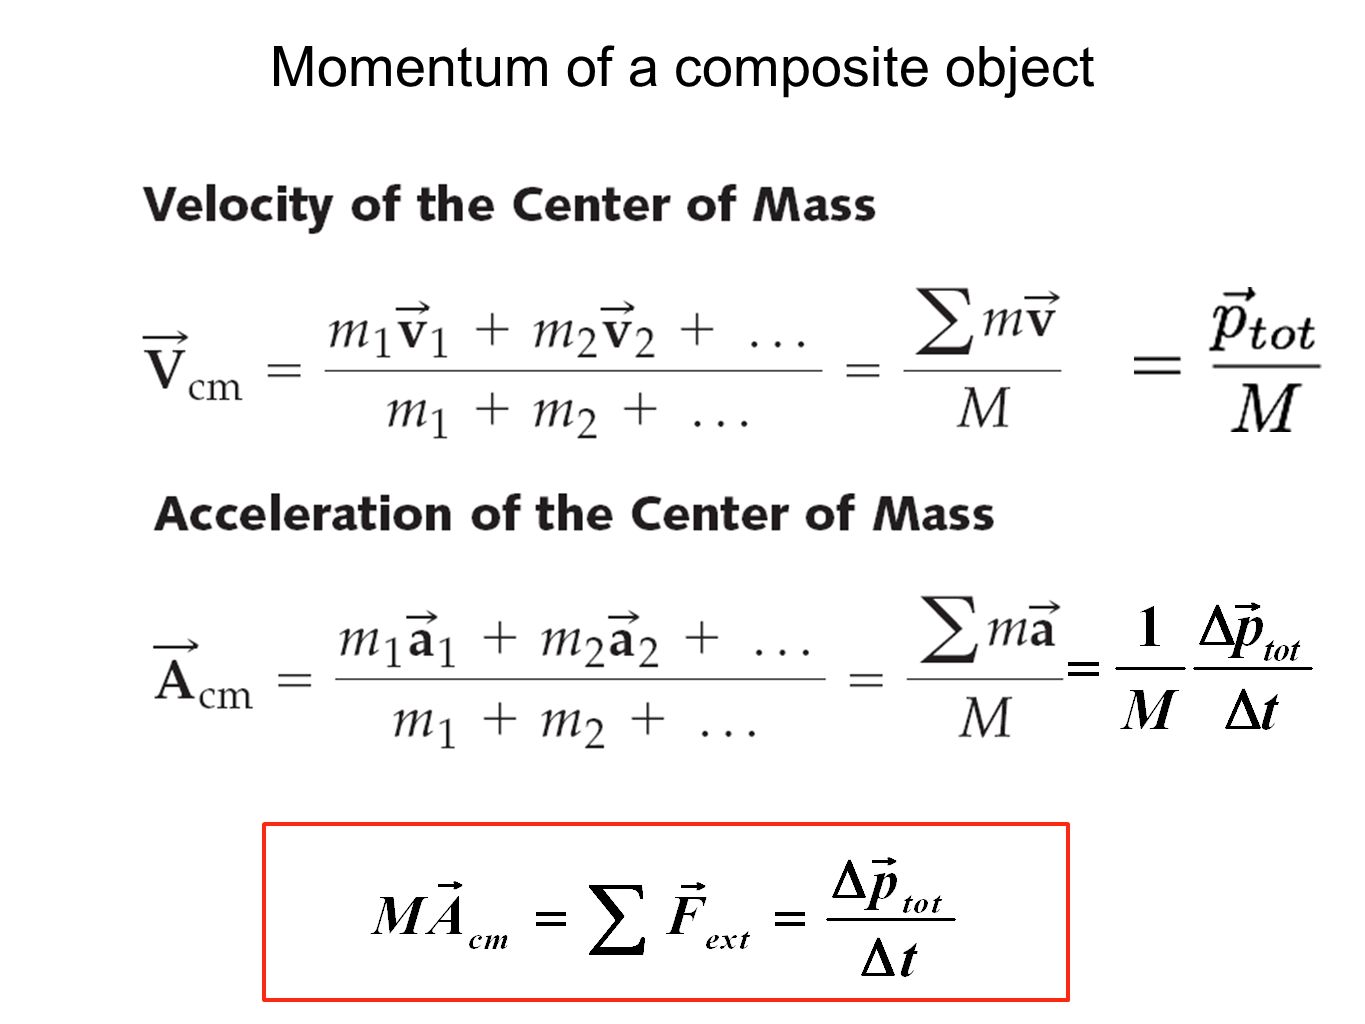 Momentum of a composite object